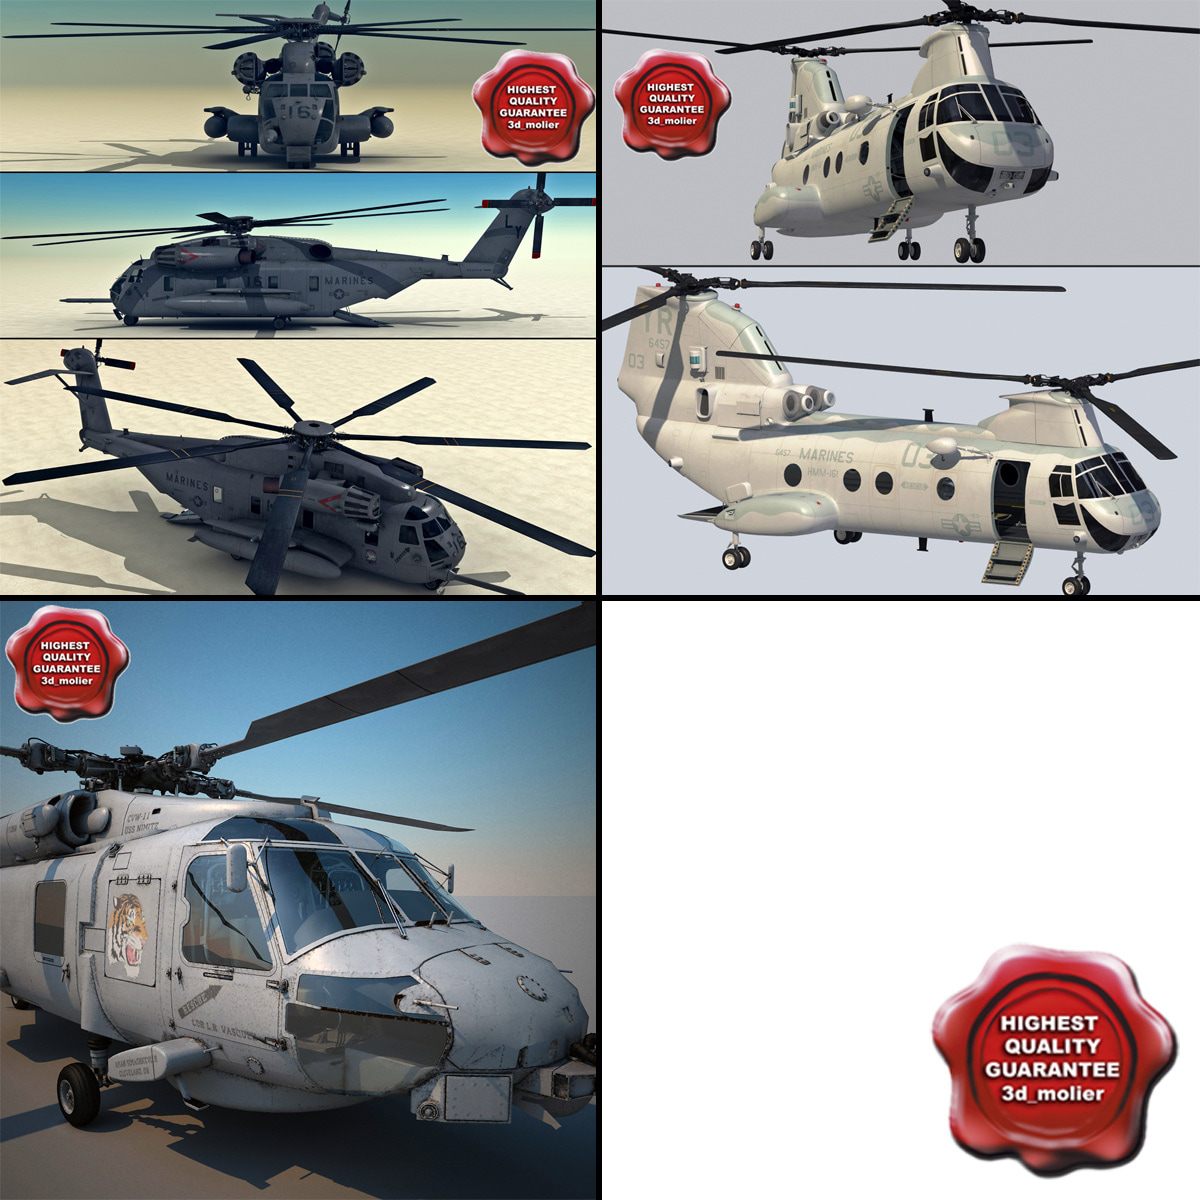 US_Navy_Helicopters_Collection_000.jpg